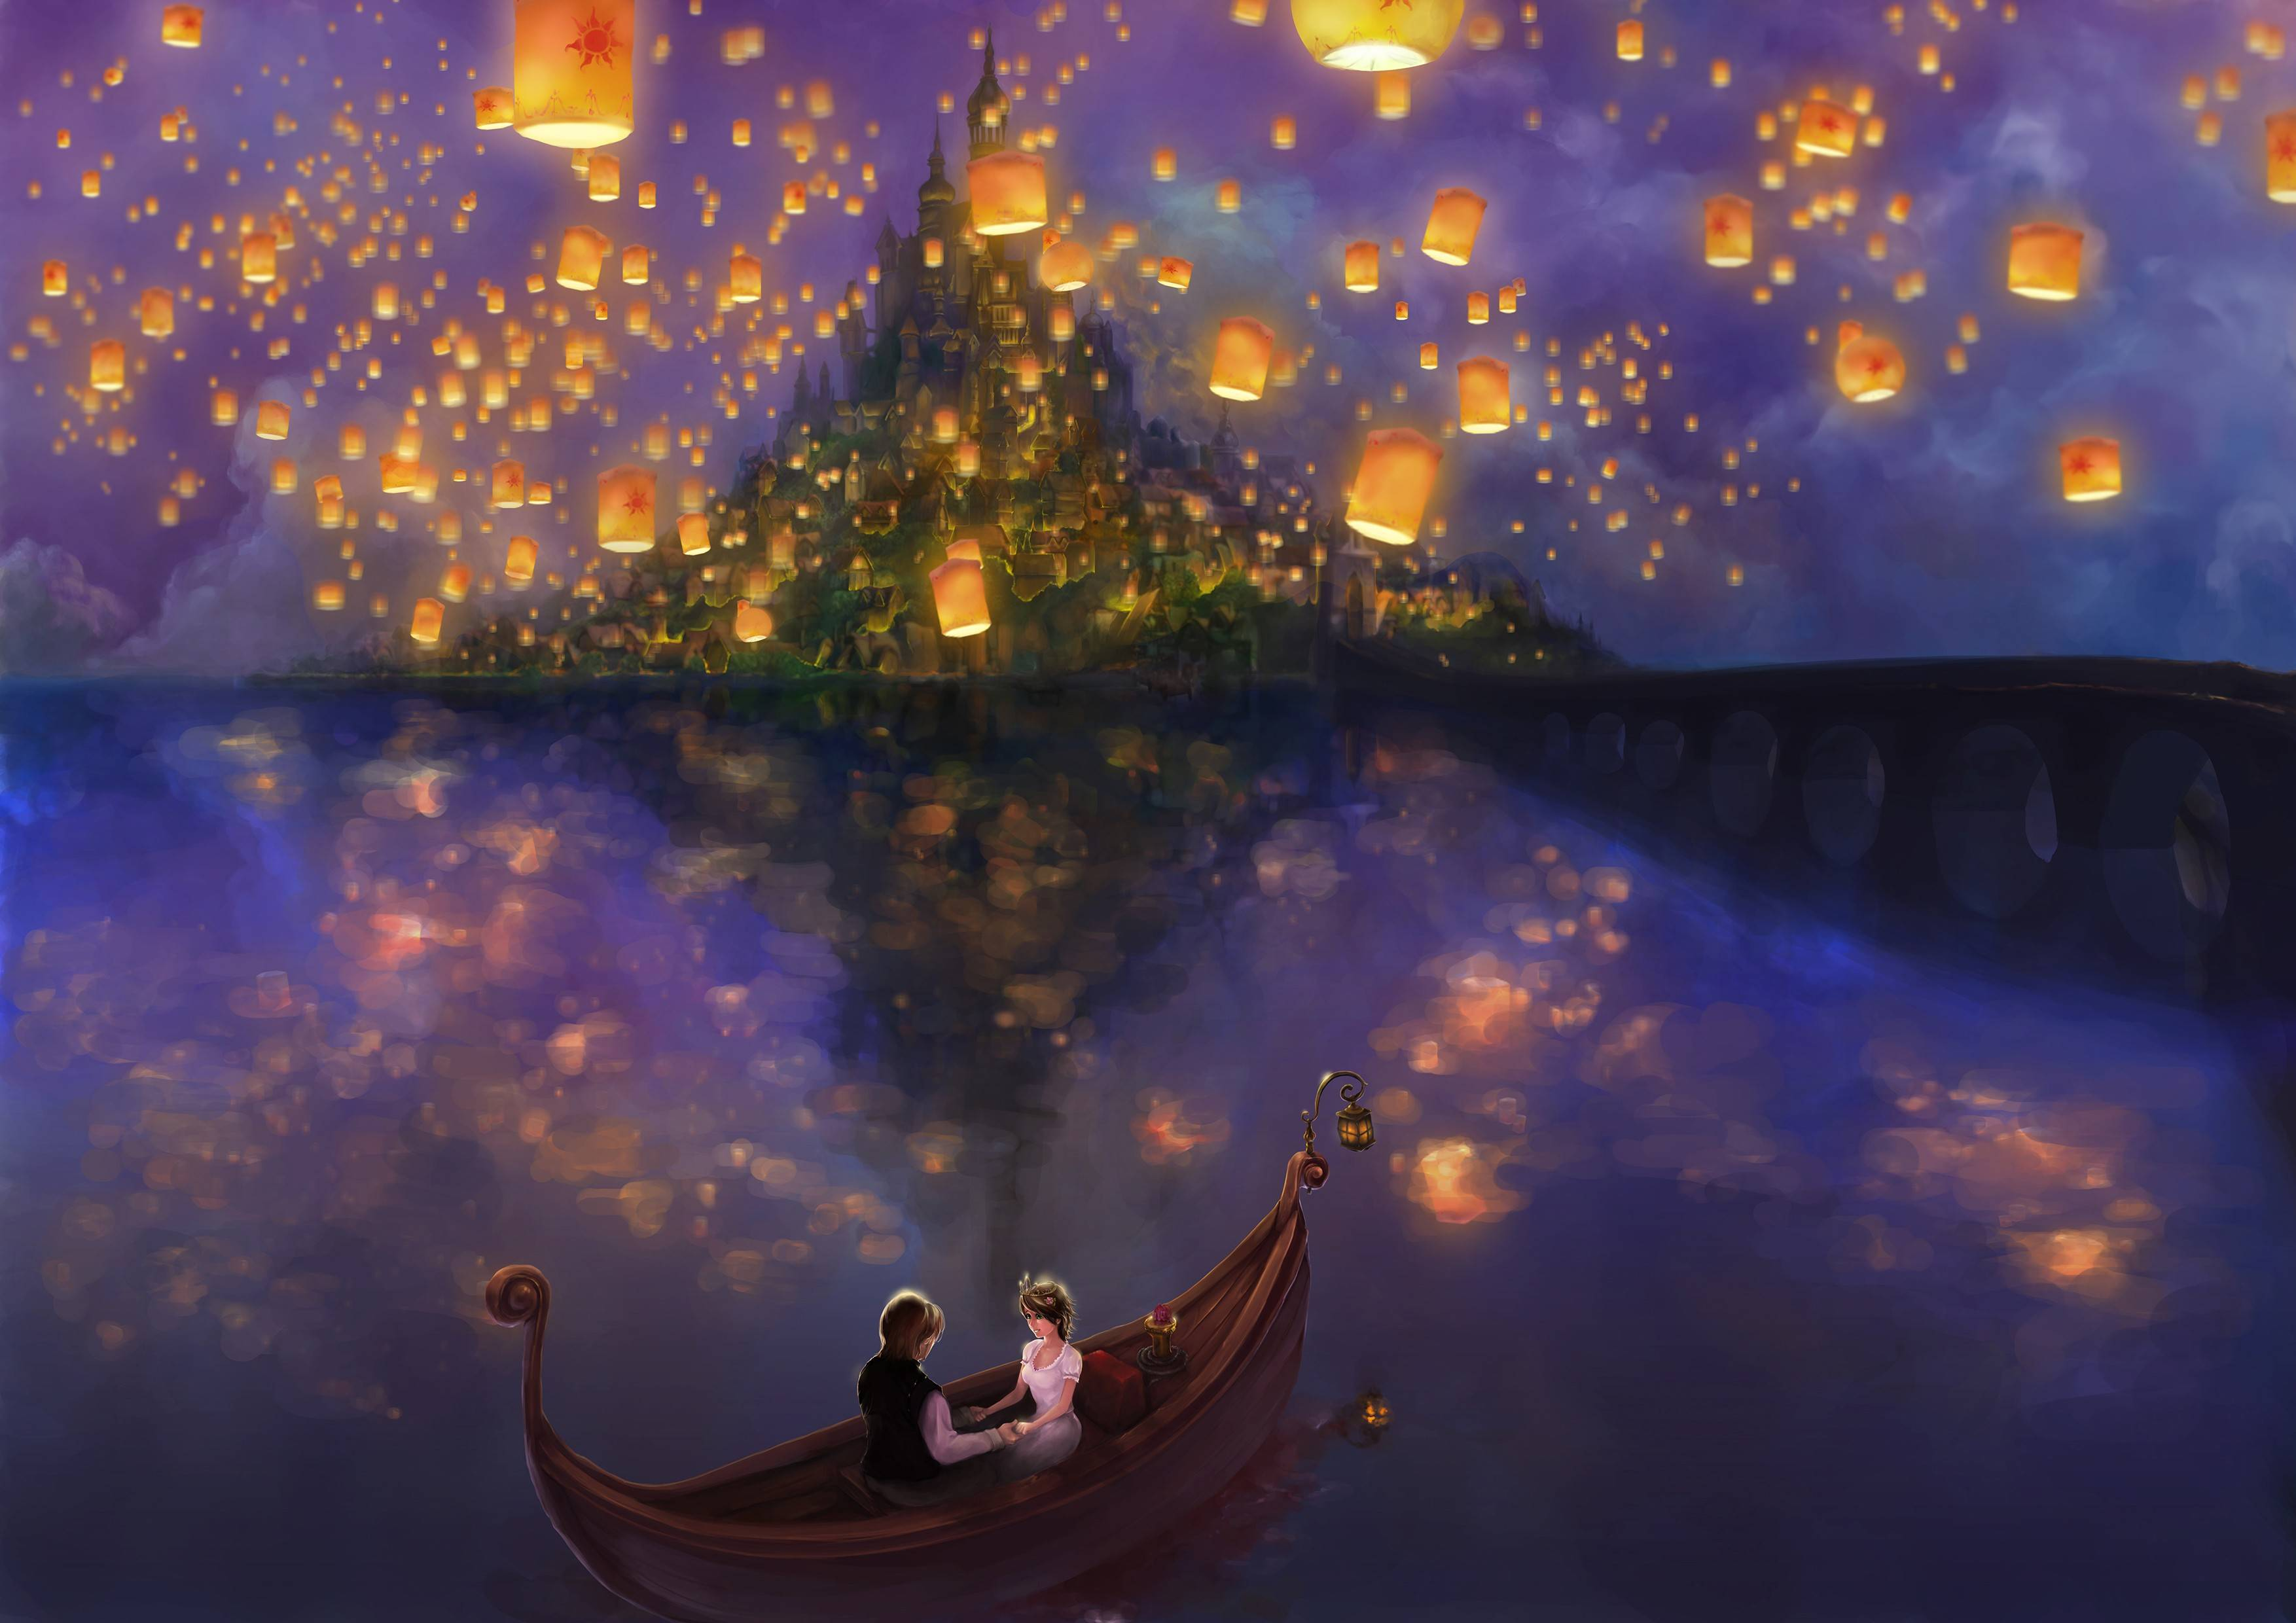 Sky Lanterns Wallpaper Iphone Disney Tangled Wallpapers Wallpaper Cave